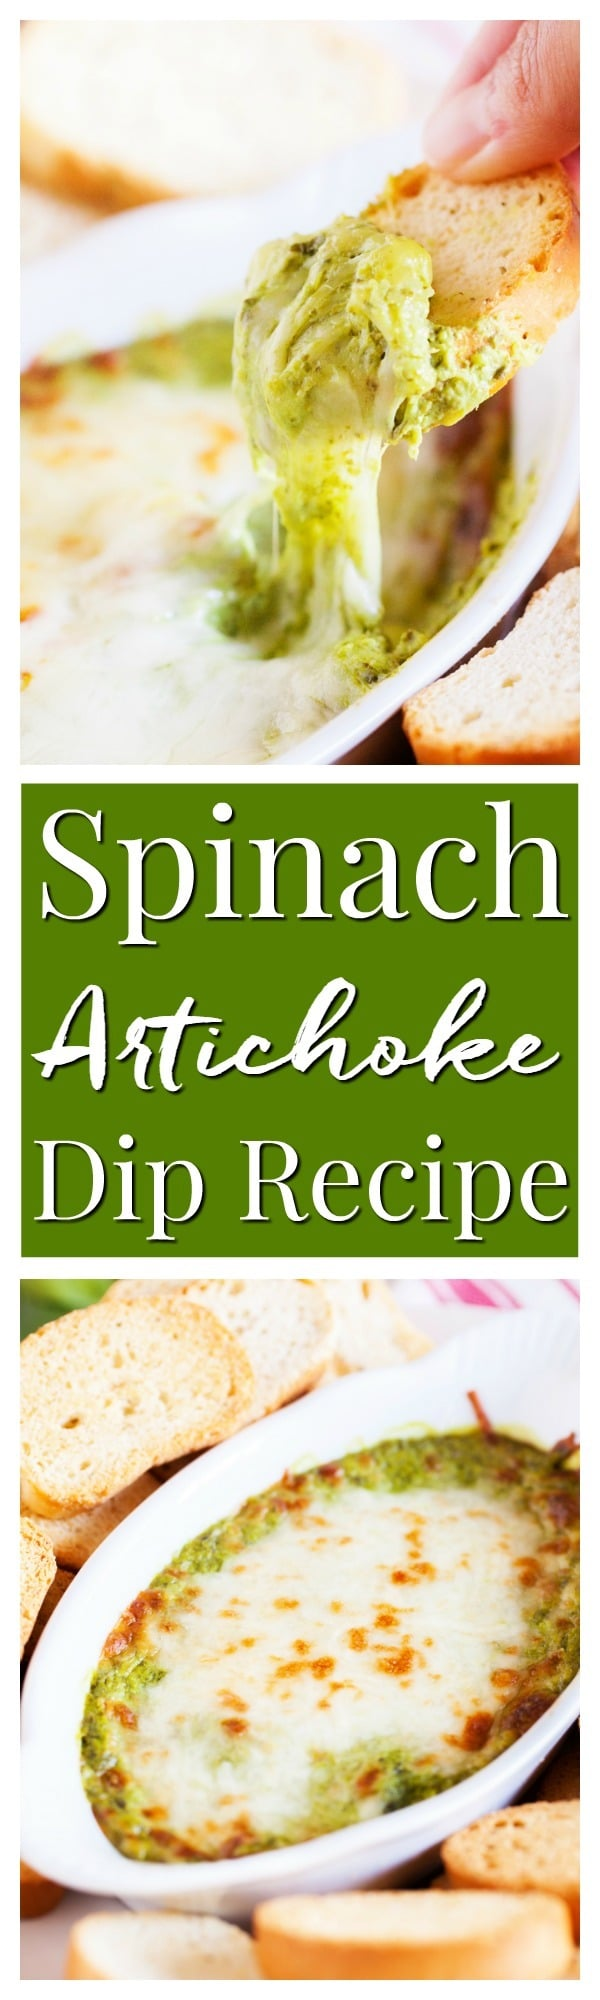 This Baked Spinach Artichoke Dip is a must have at any party. With two different prep methods, you can make it either hearty or creamy! via @sugarandsoulco